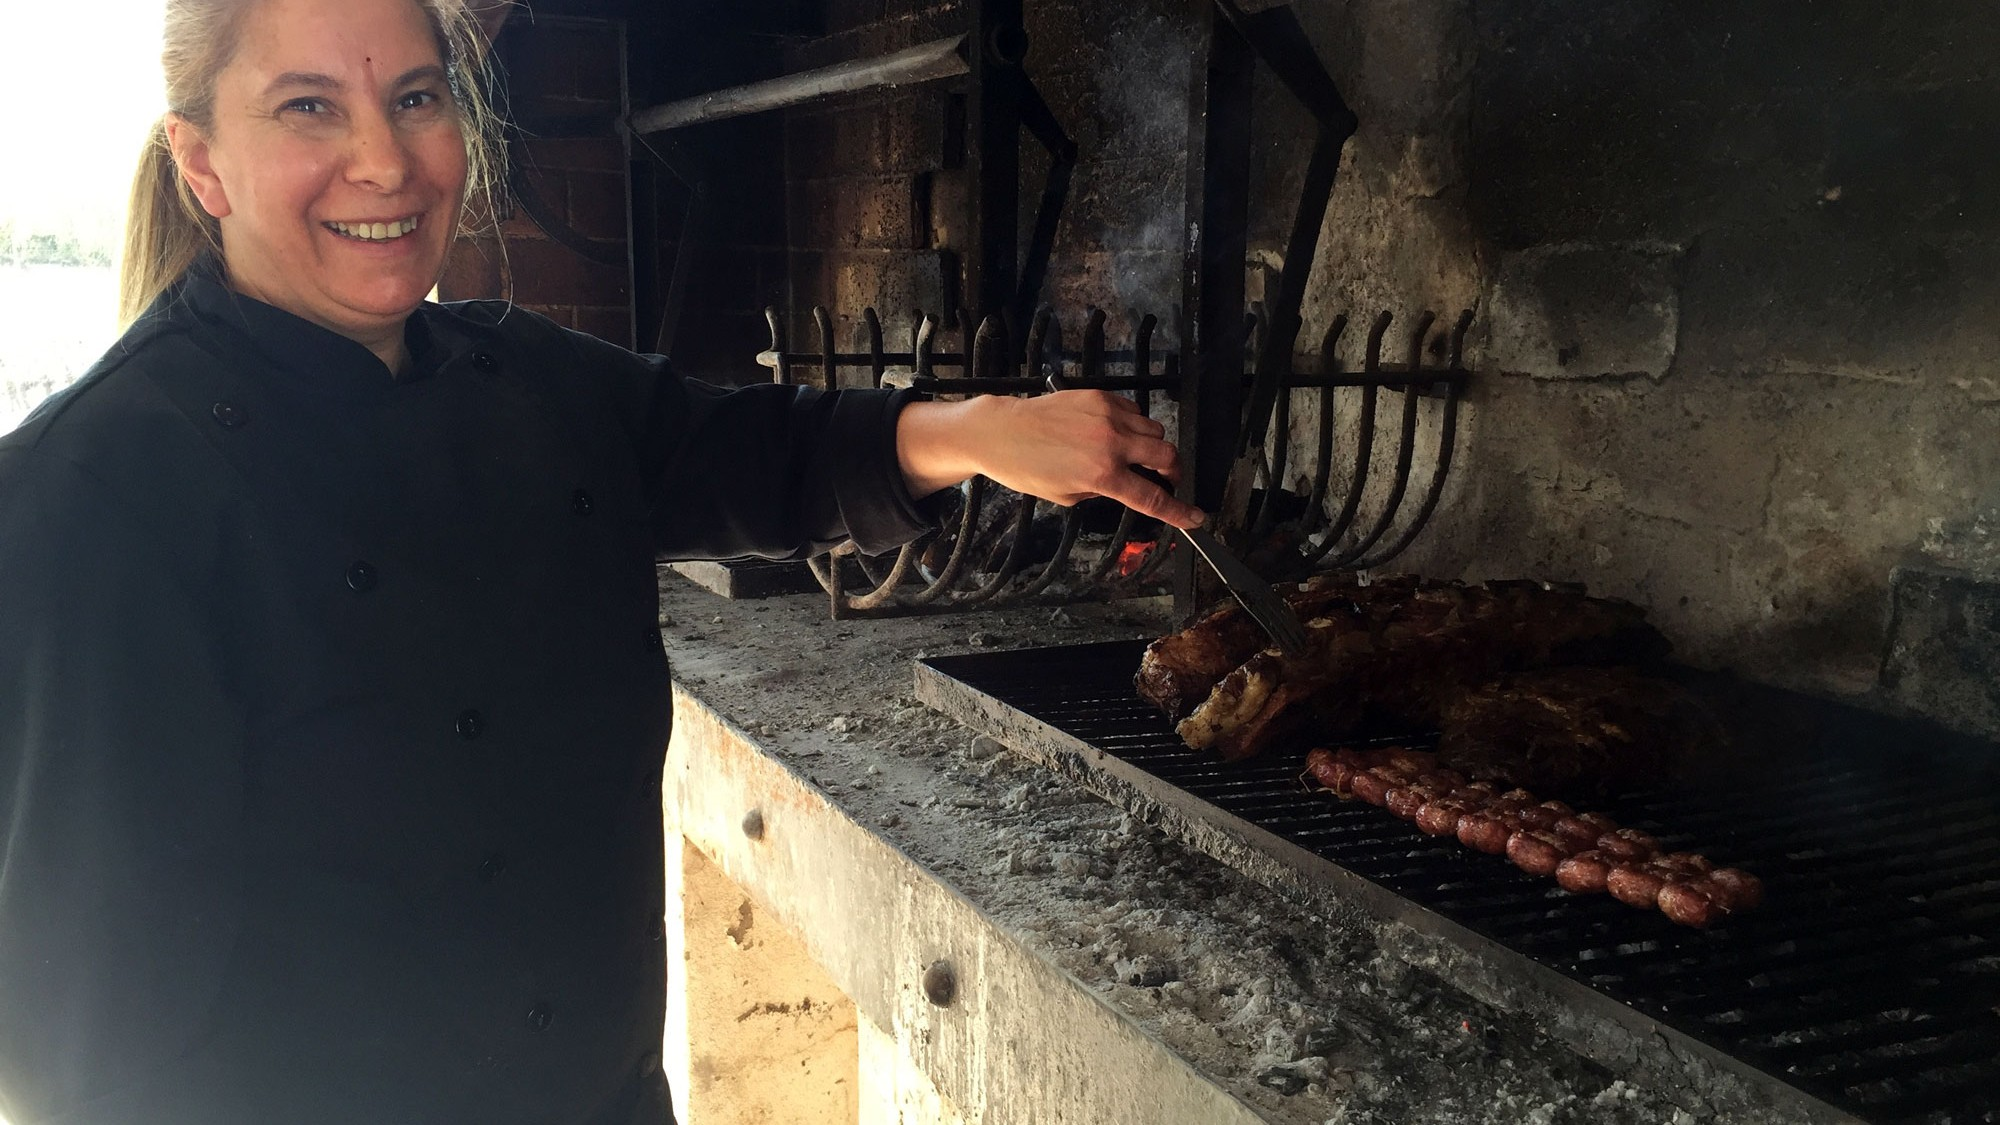 female-grill-chef-argentina6